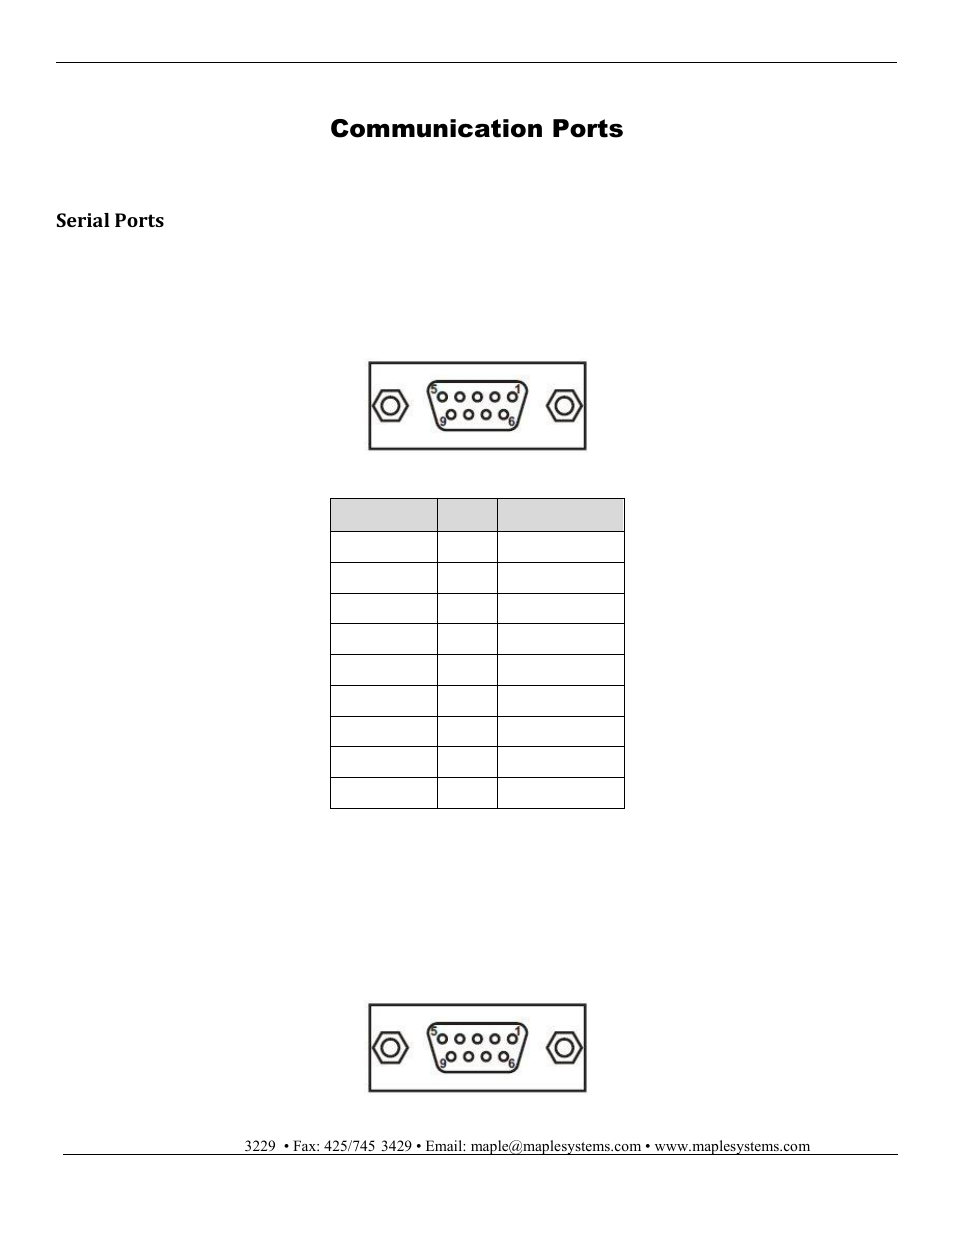 Communication Ports Serial Maple Systems Hmc7000 Series Rs485 Multidrop Wiring User Manual Page 16 27